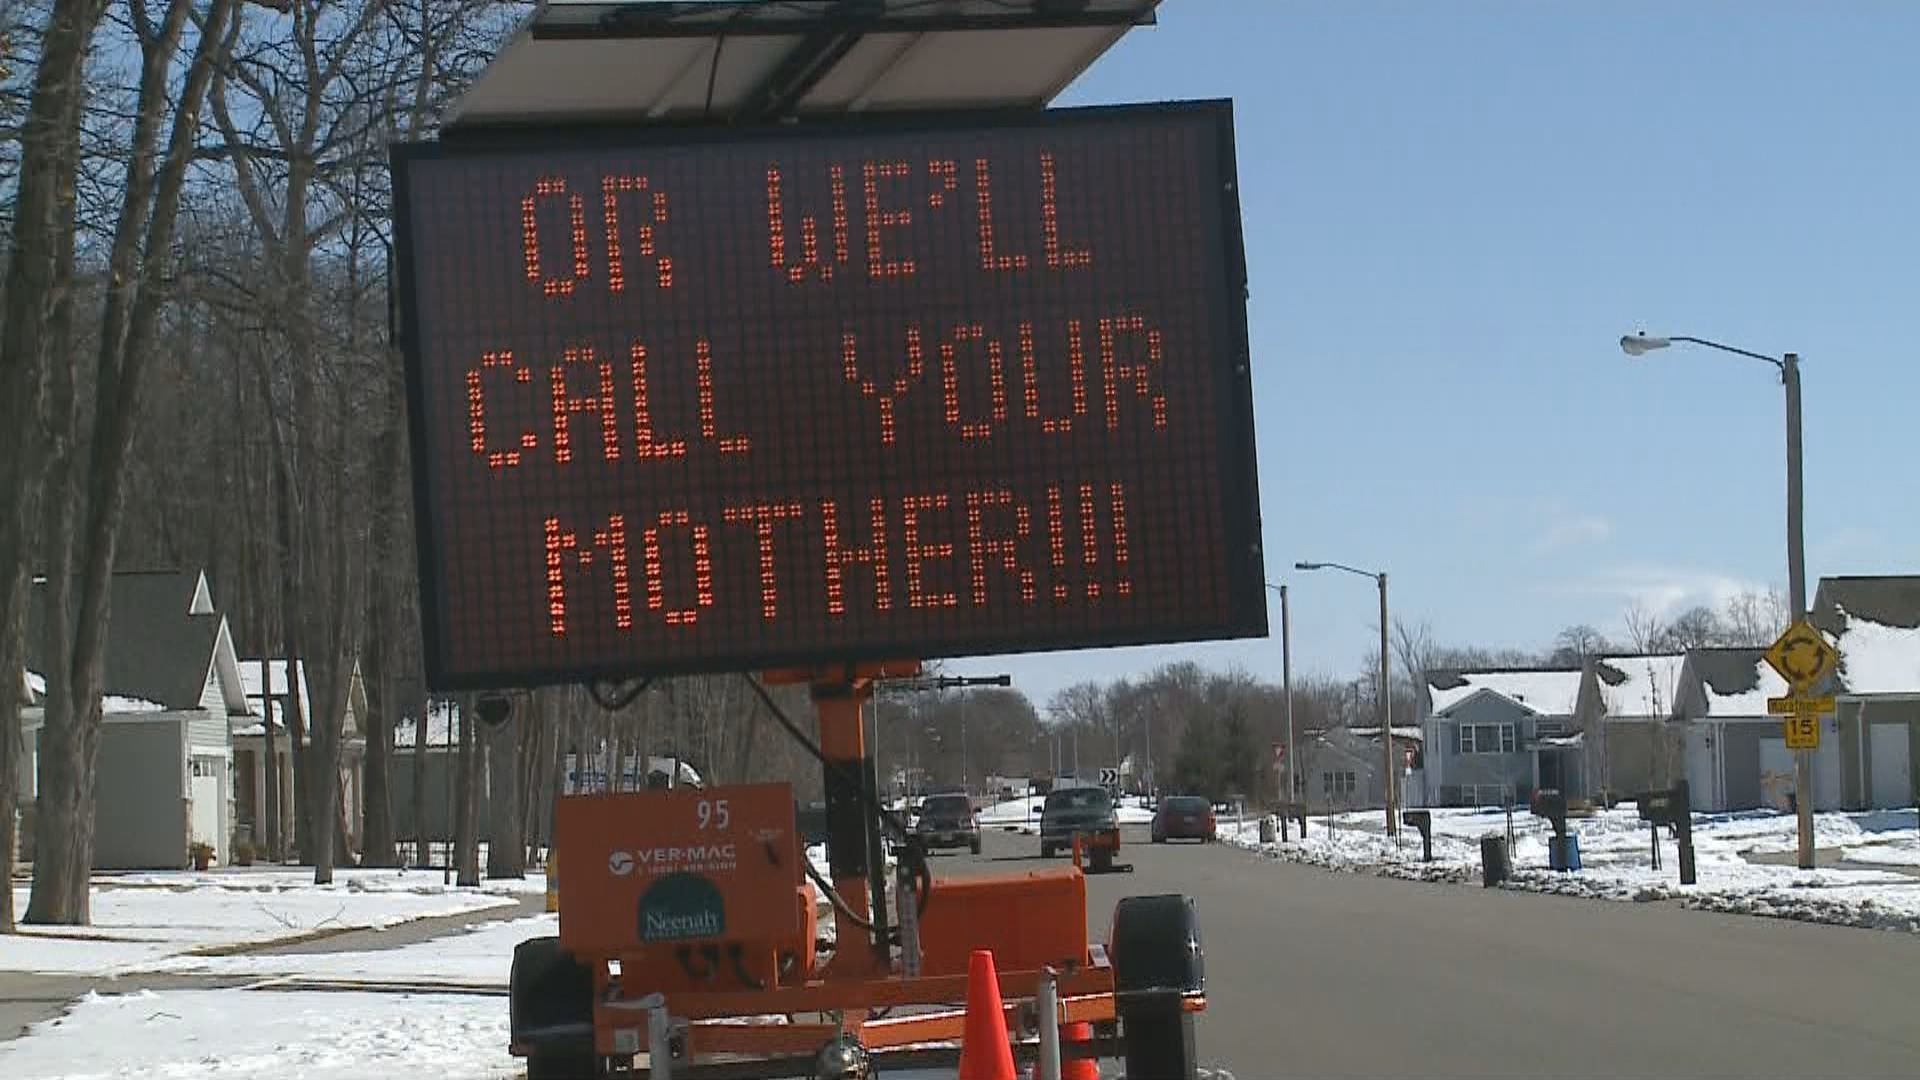 Neenah road sign in the area of Castle Oak Drive and Marathon Avenue, March 8, 2018. (WLUK)